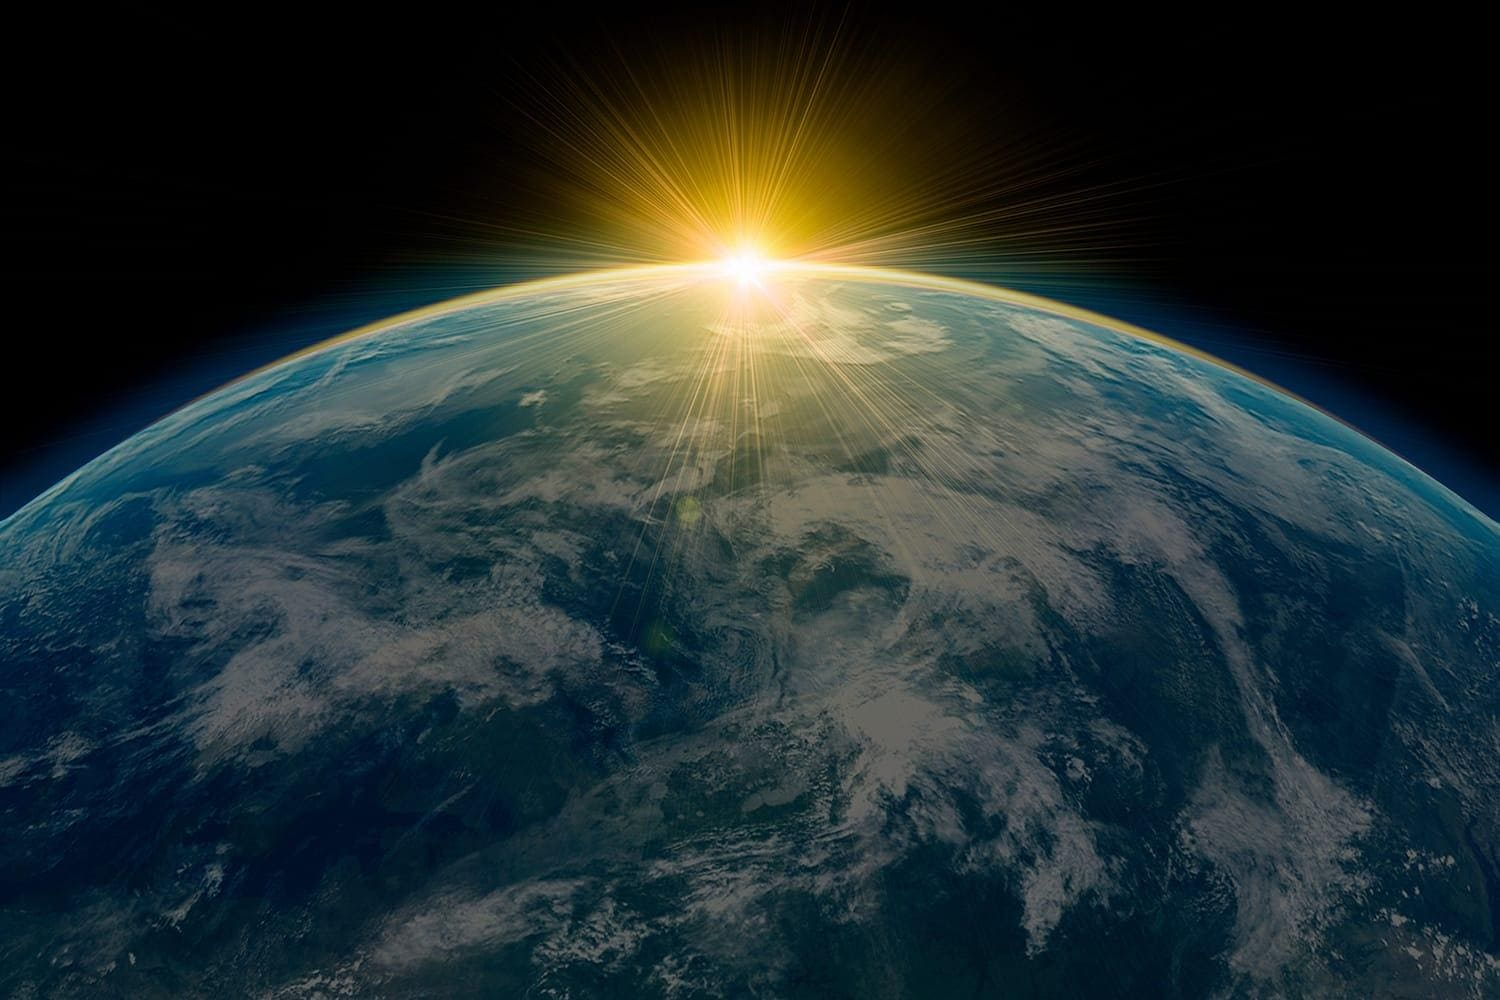 sunrise-over-earth.jpg